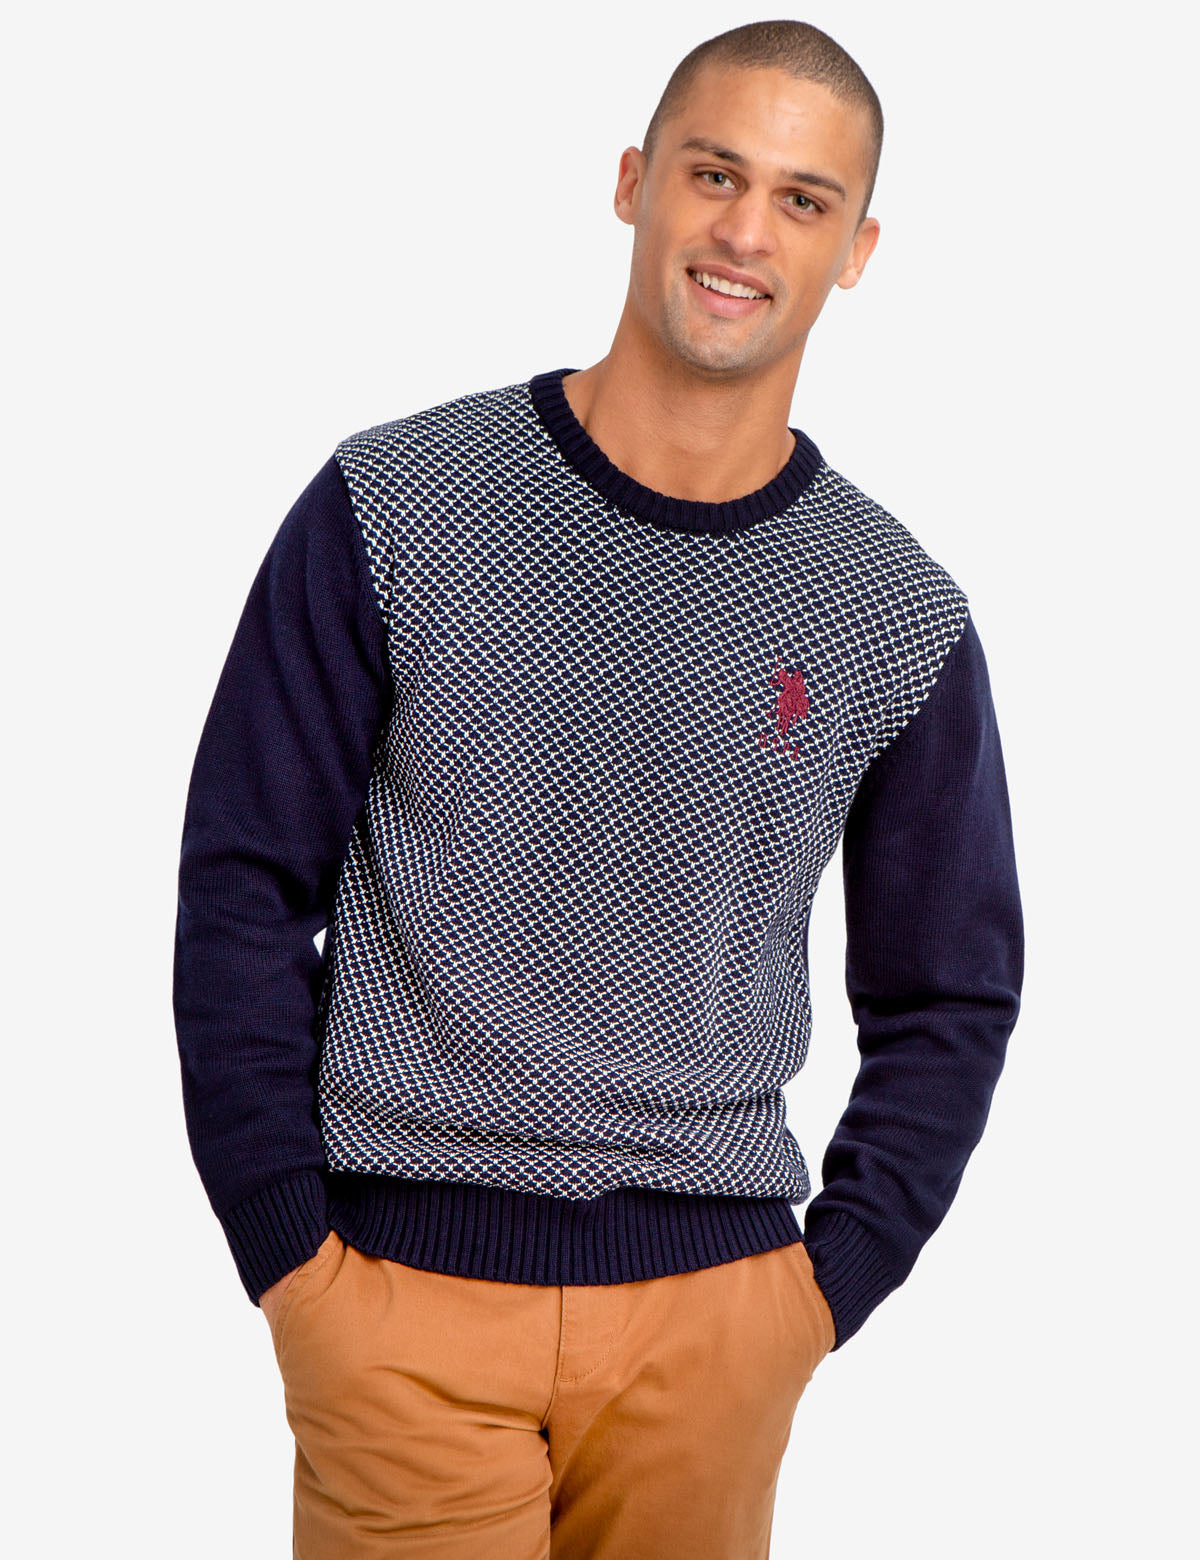 BIRDSEYE SWEATER